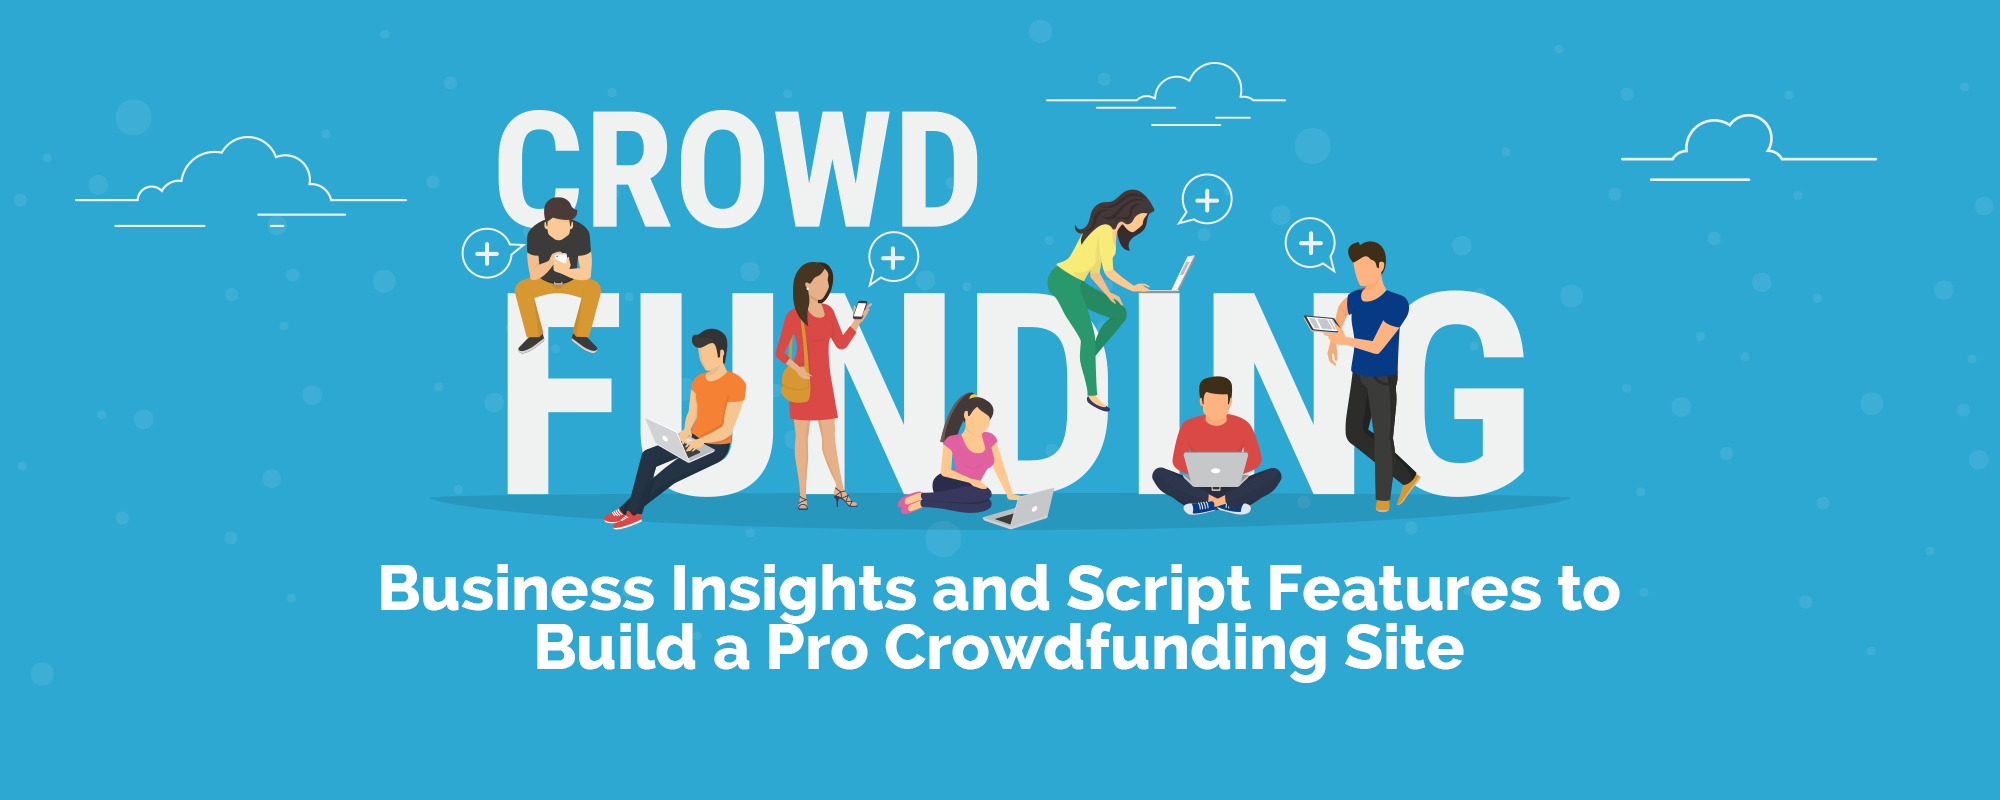 Business Insights and Script Features to Build a Pro Crowdfunding Site